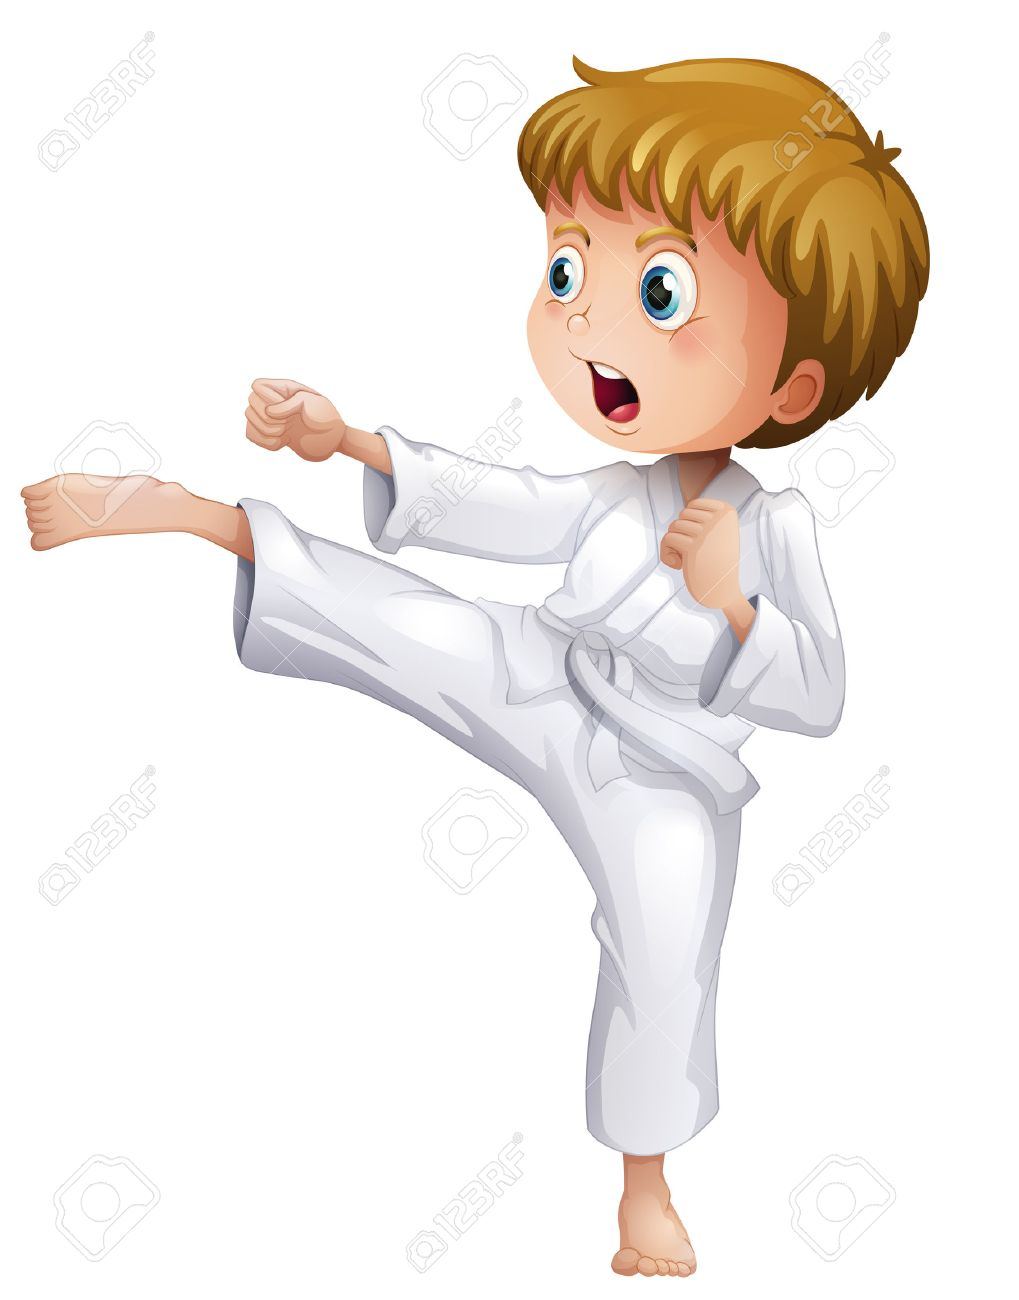 Illustration of a brave boy doing his karate moves on a white background - 28200679